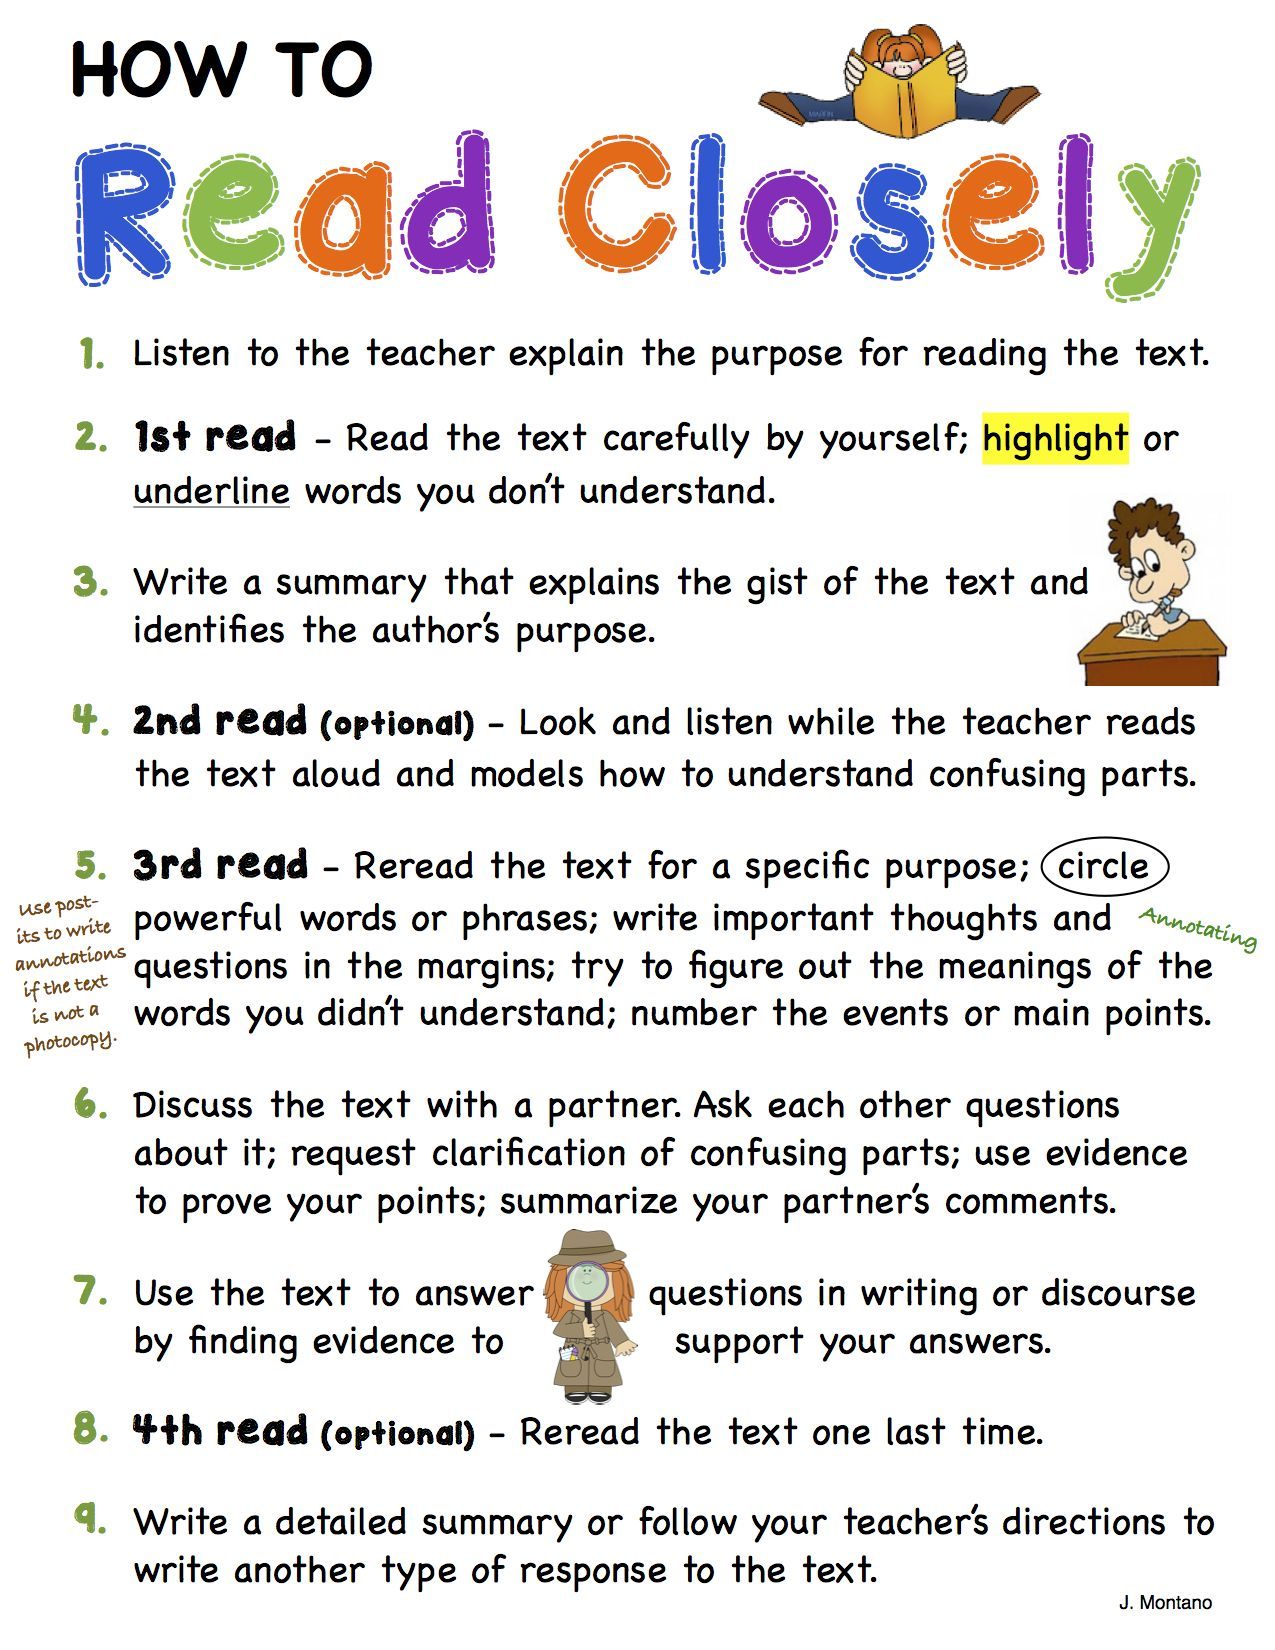 Gr 3 5 Some Recommended Steps For Doing Close Reading Close Reading Reading Lessons 5th Grade Reading [ 1650 x 1275 Pixel ]